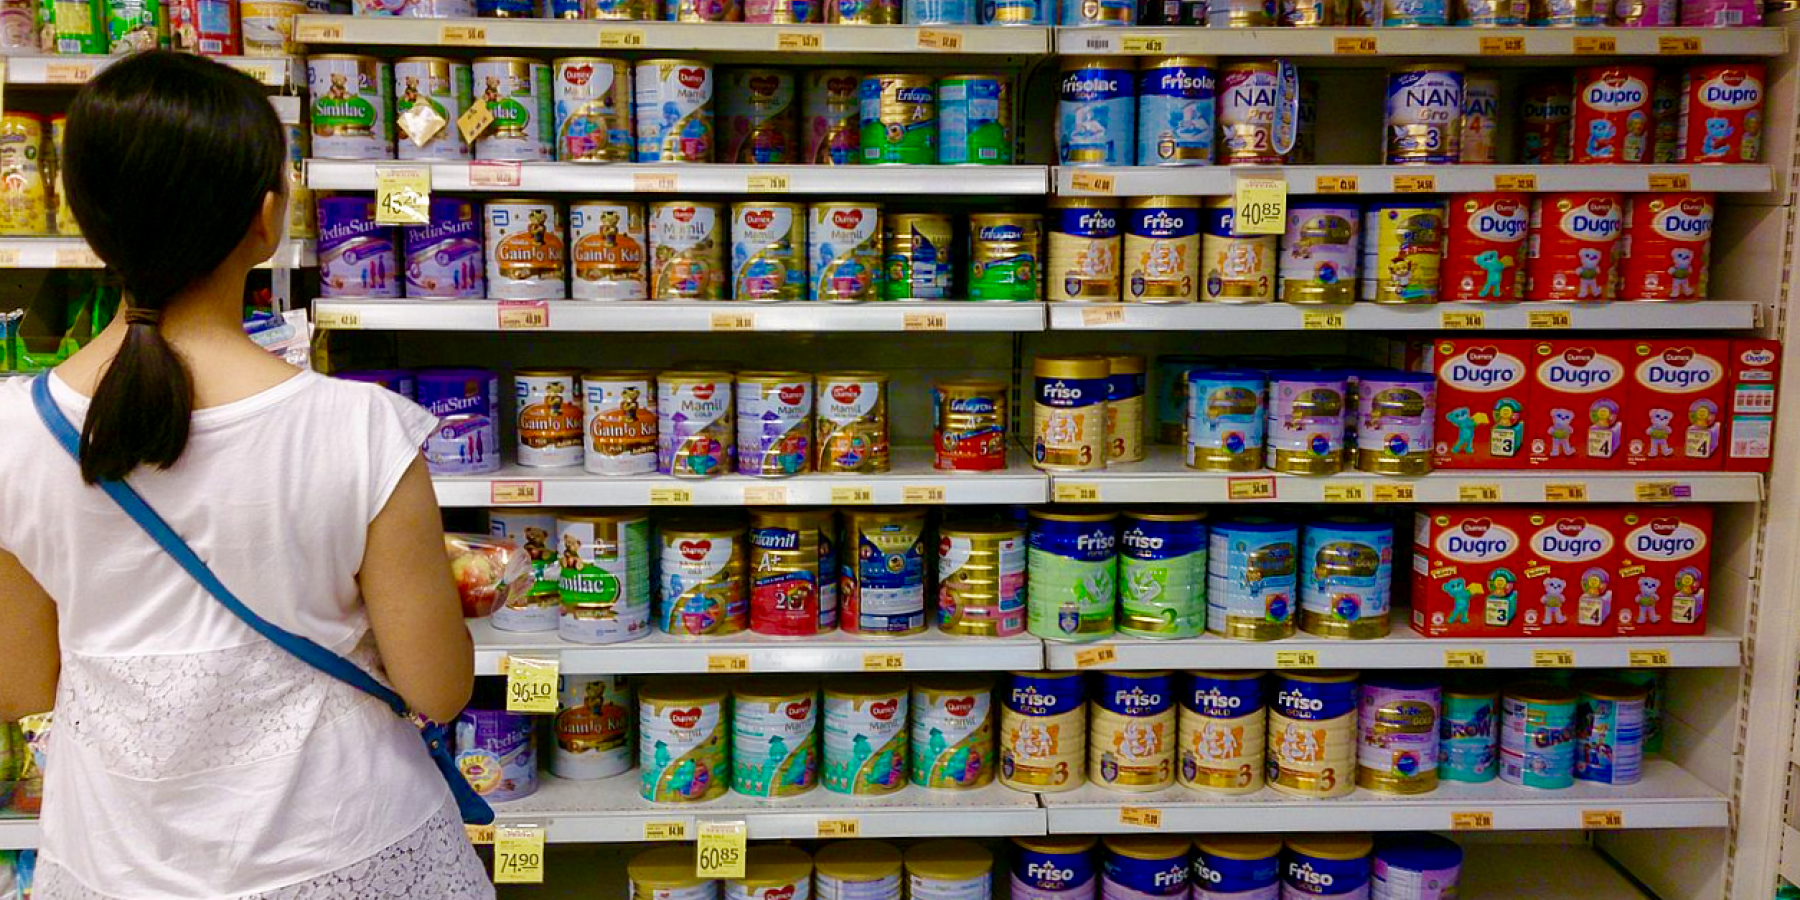 Woman_shopping_for_infant_formula_in_a_supermarket,_Singapore_-_20131102